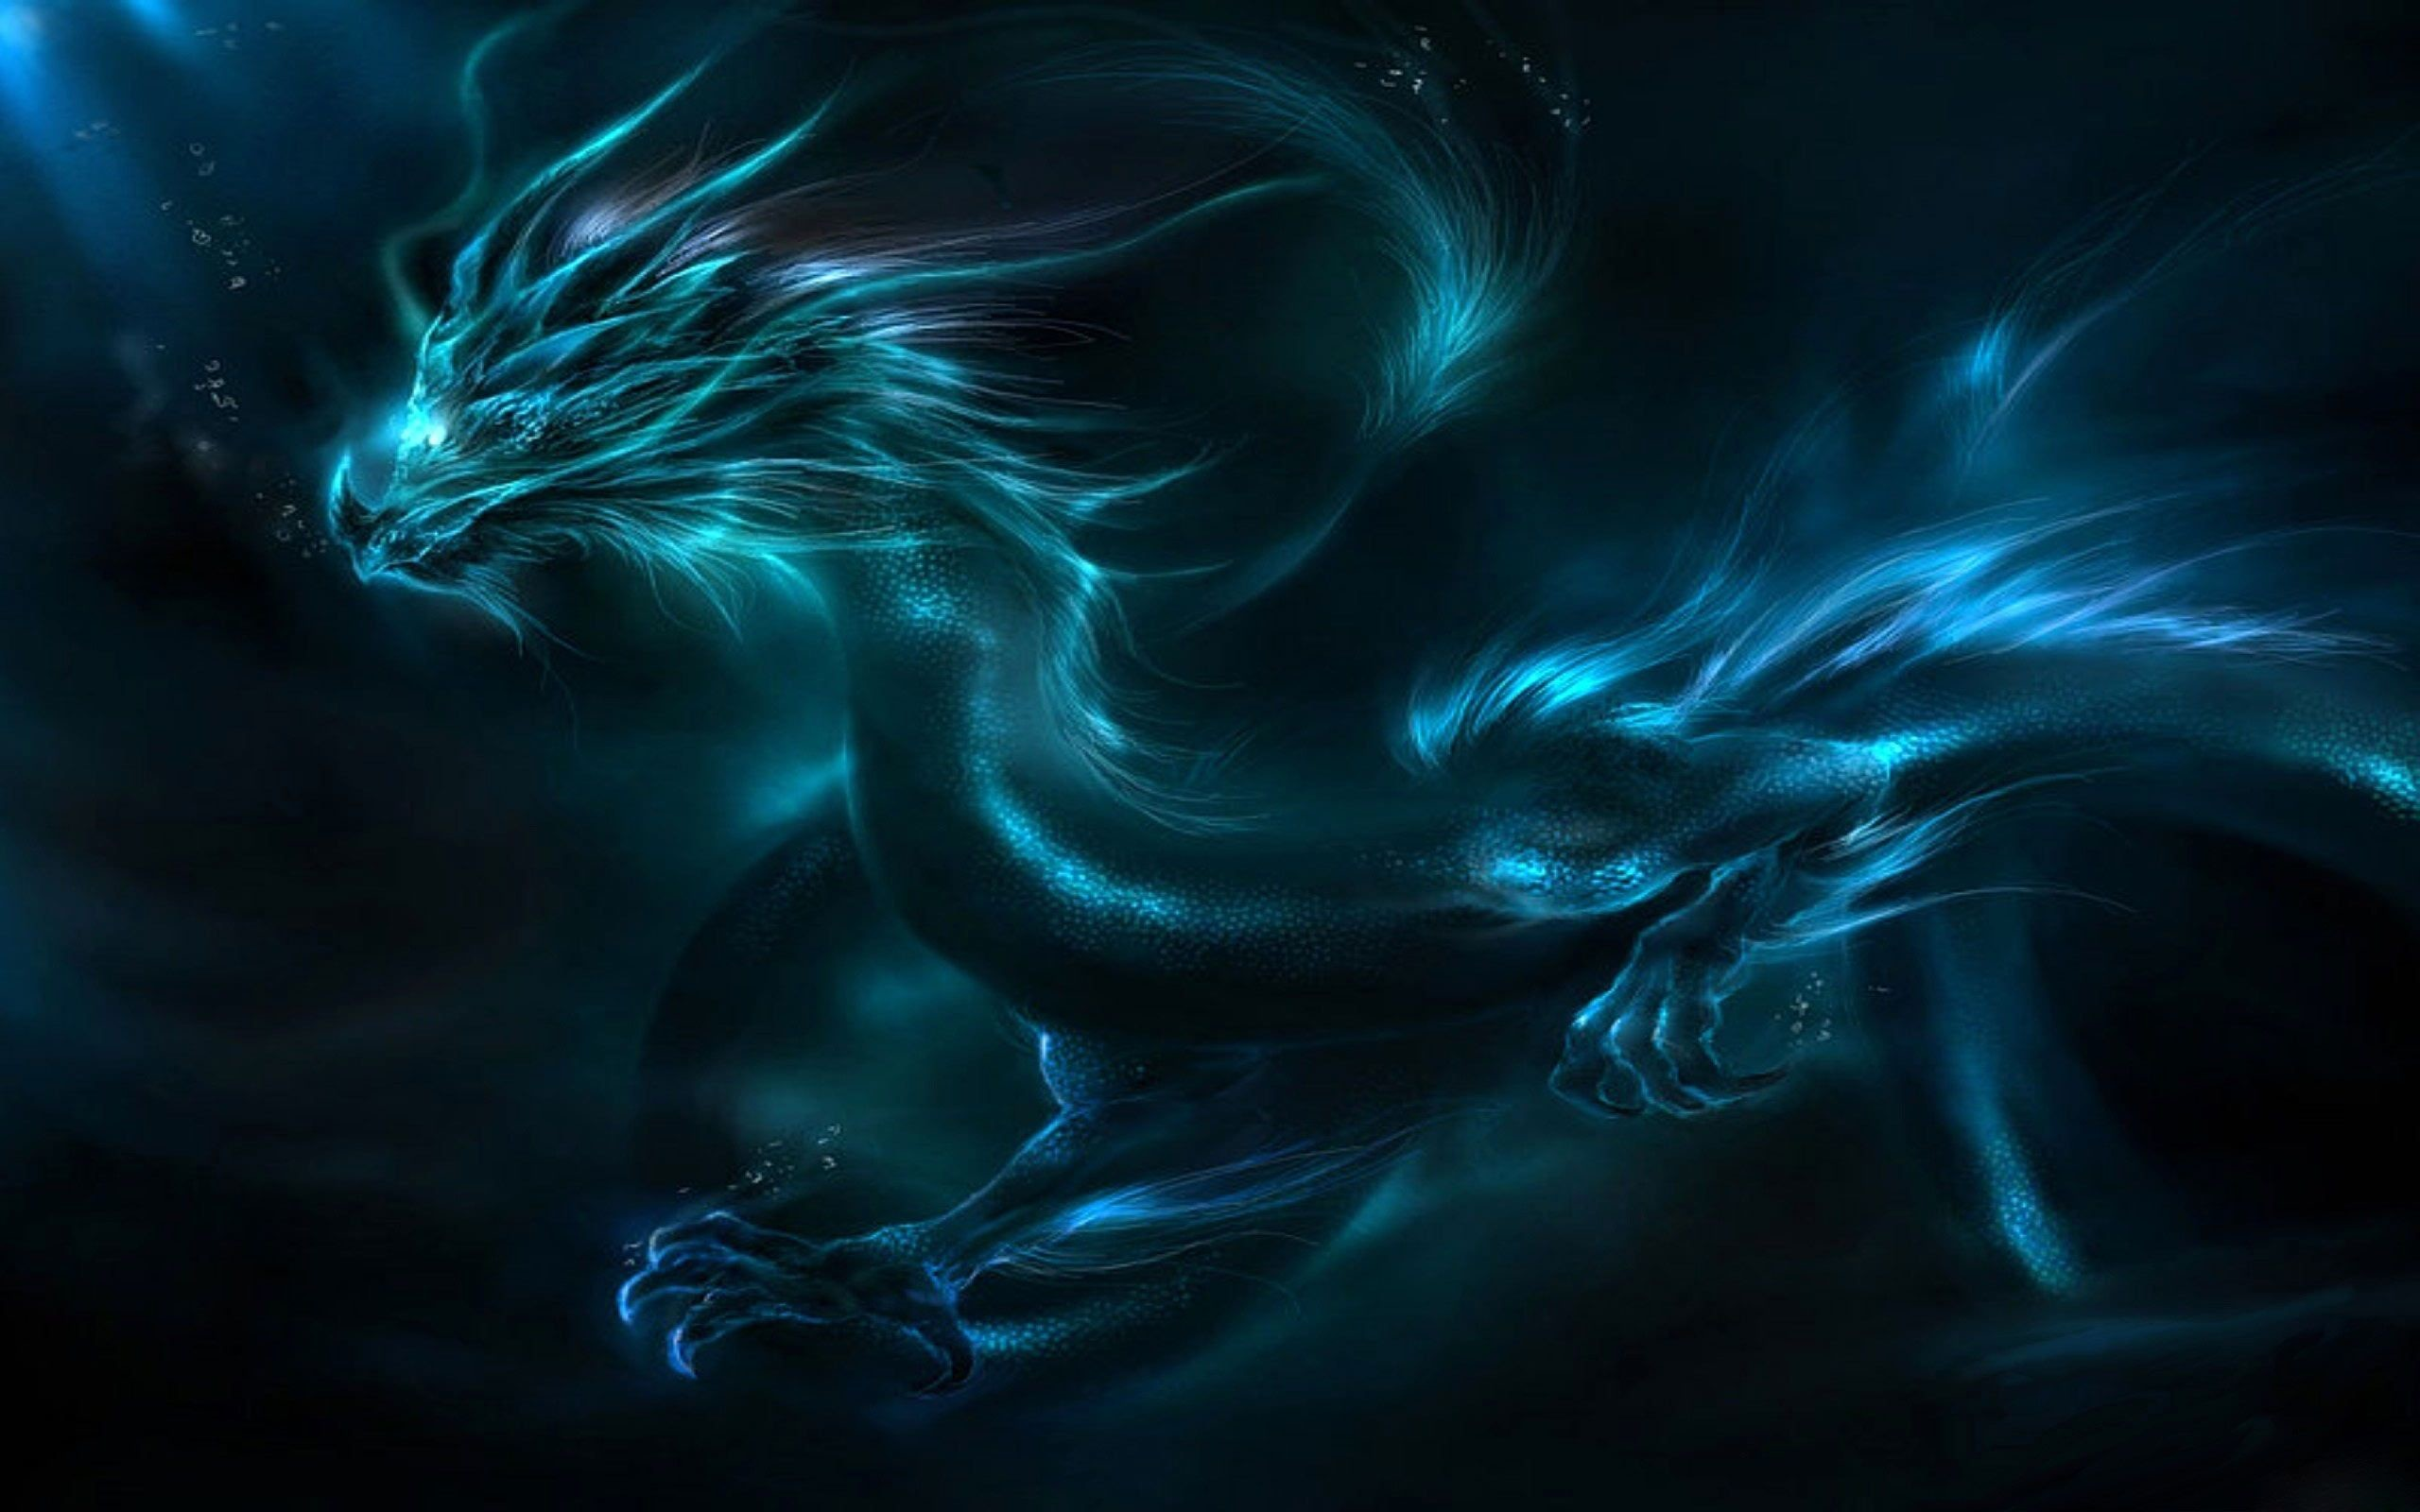 Moving Dragon Wallpapers For Desktop 78 Images